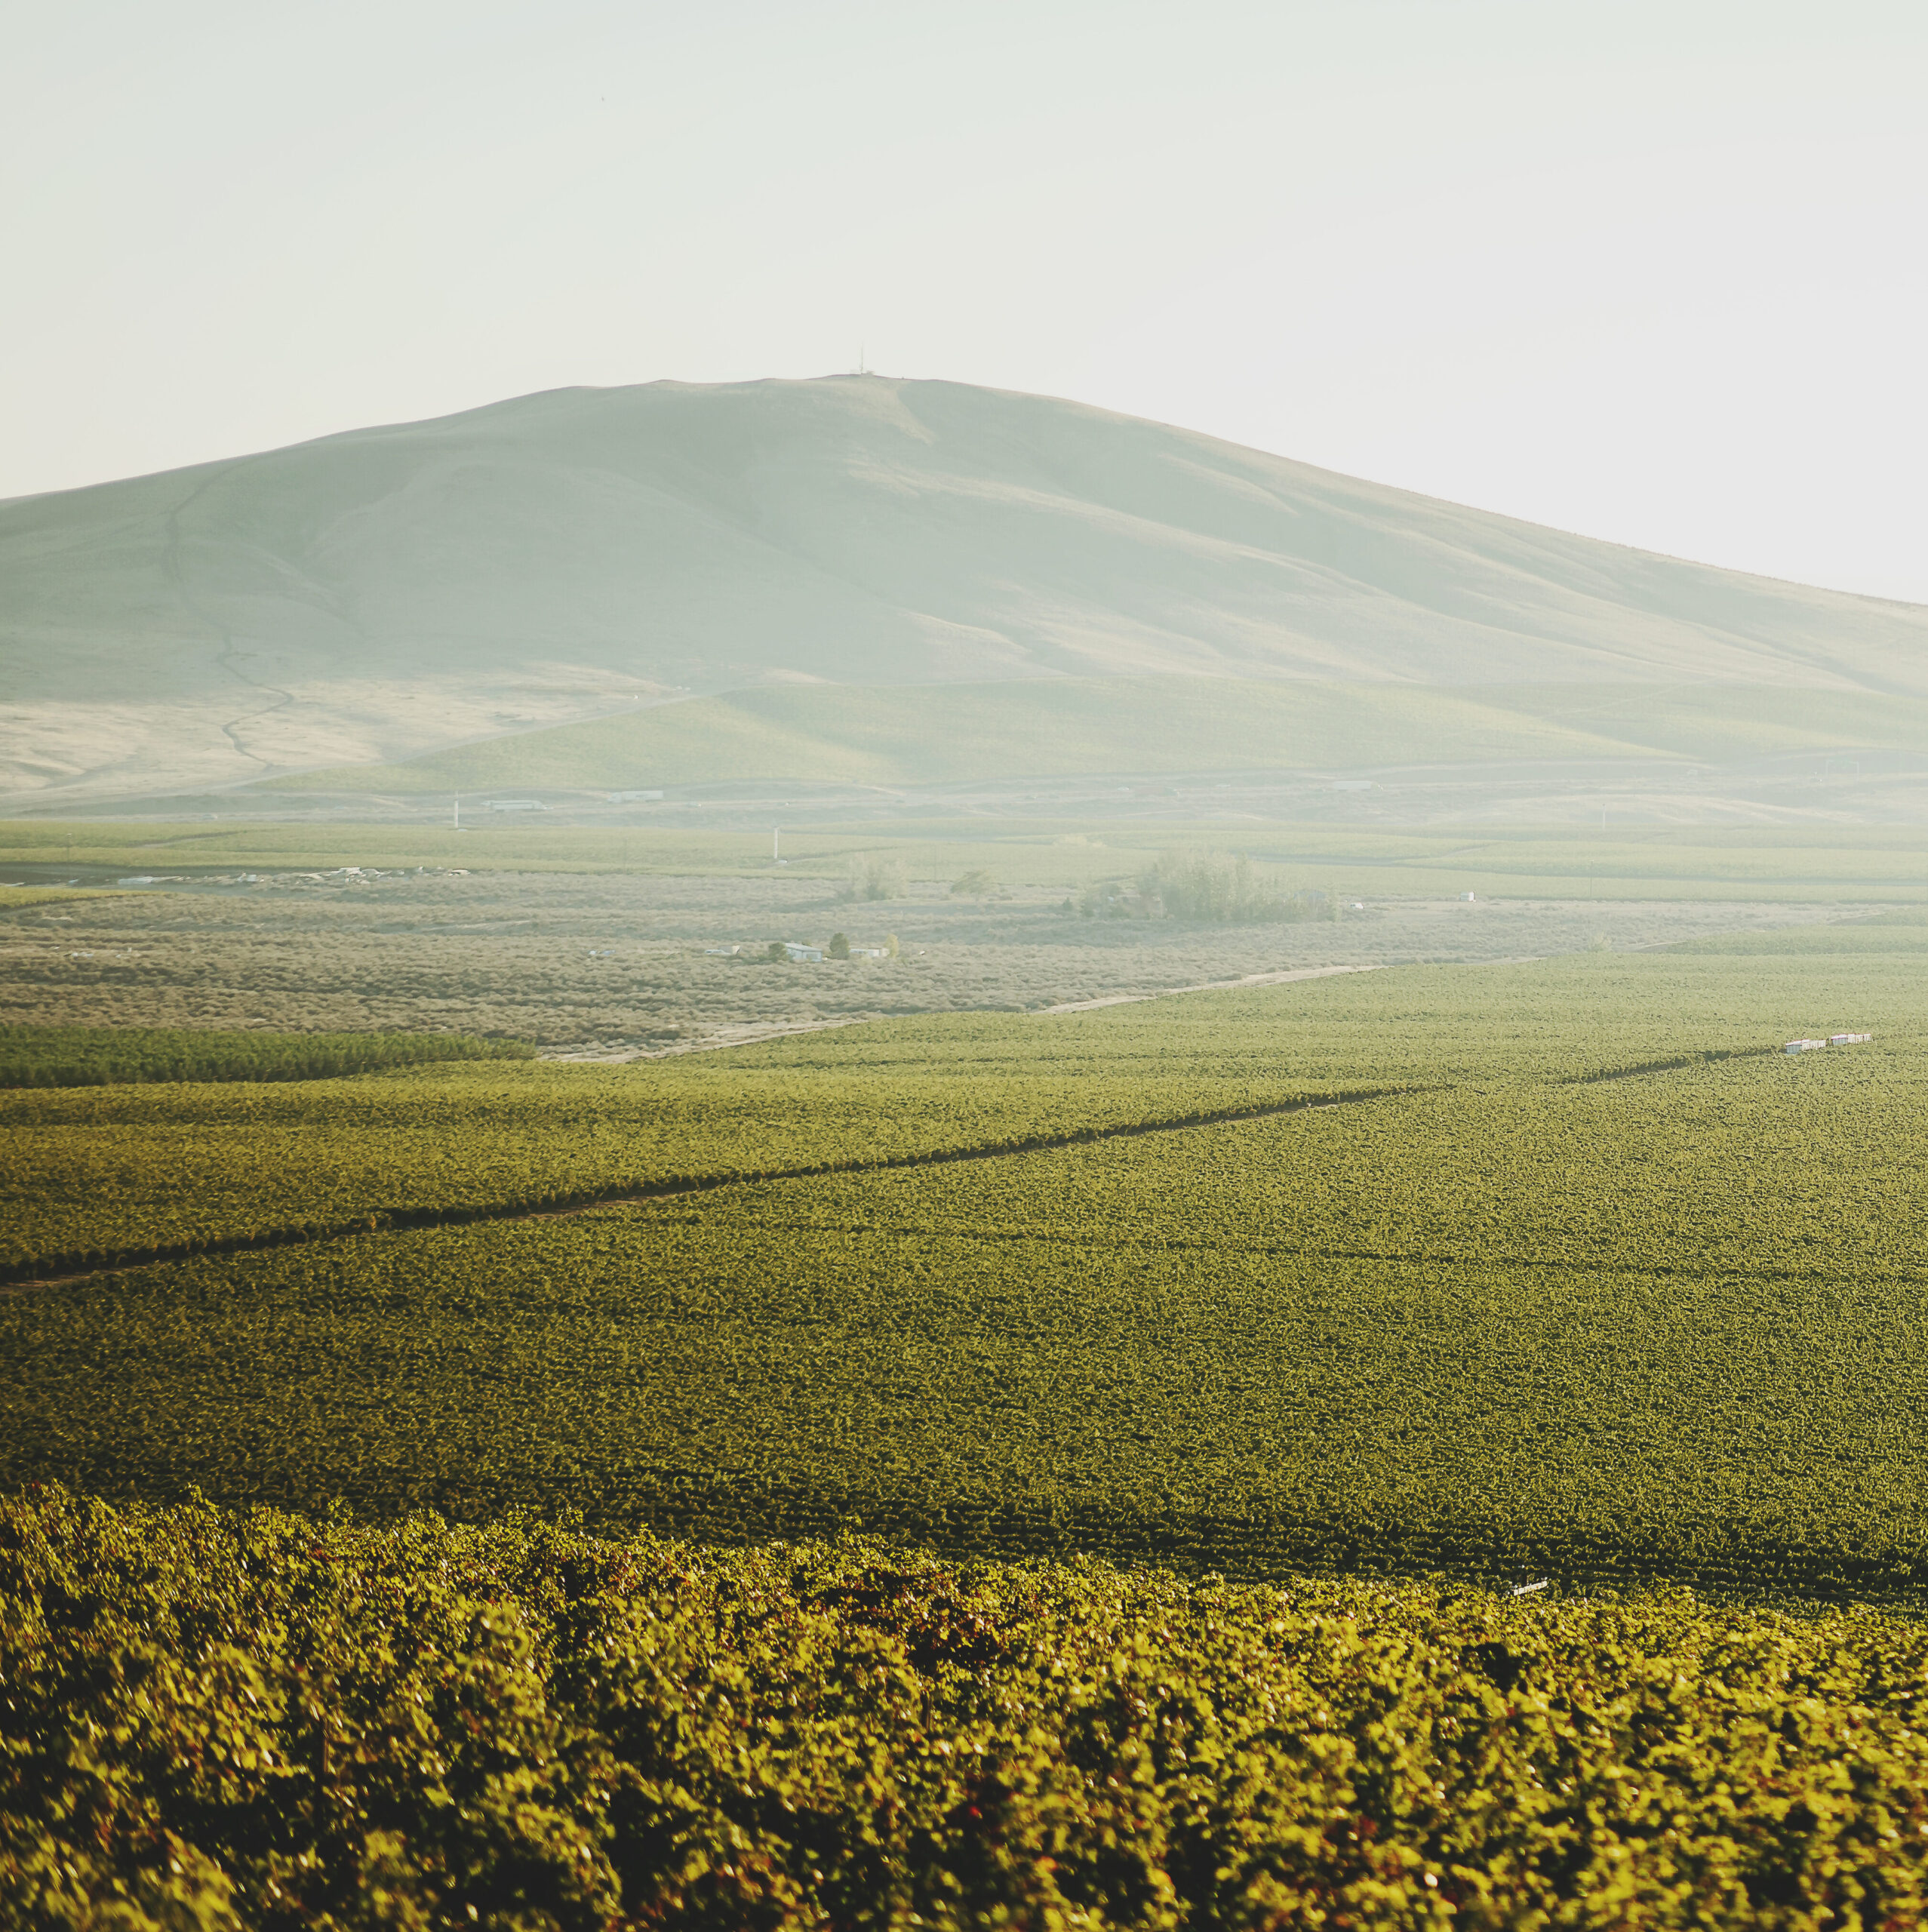 A sea of green as vineyards stretch toward a large rounded hill in the distance. The sky is hazy and green-grey.